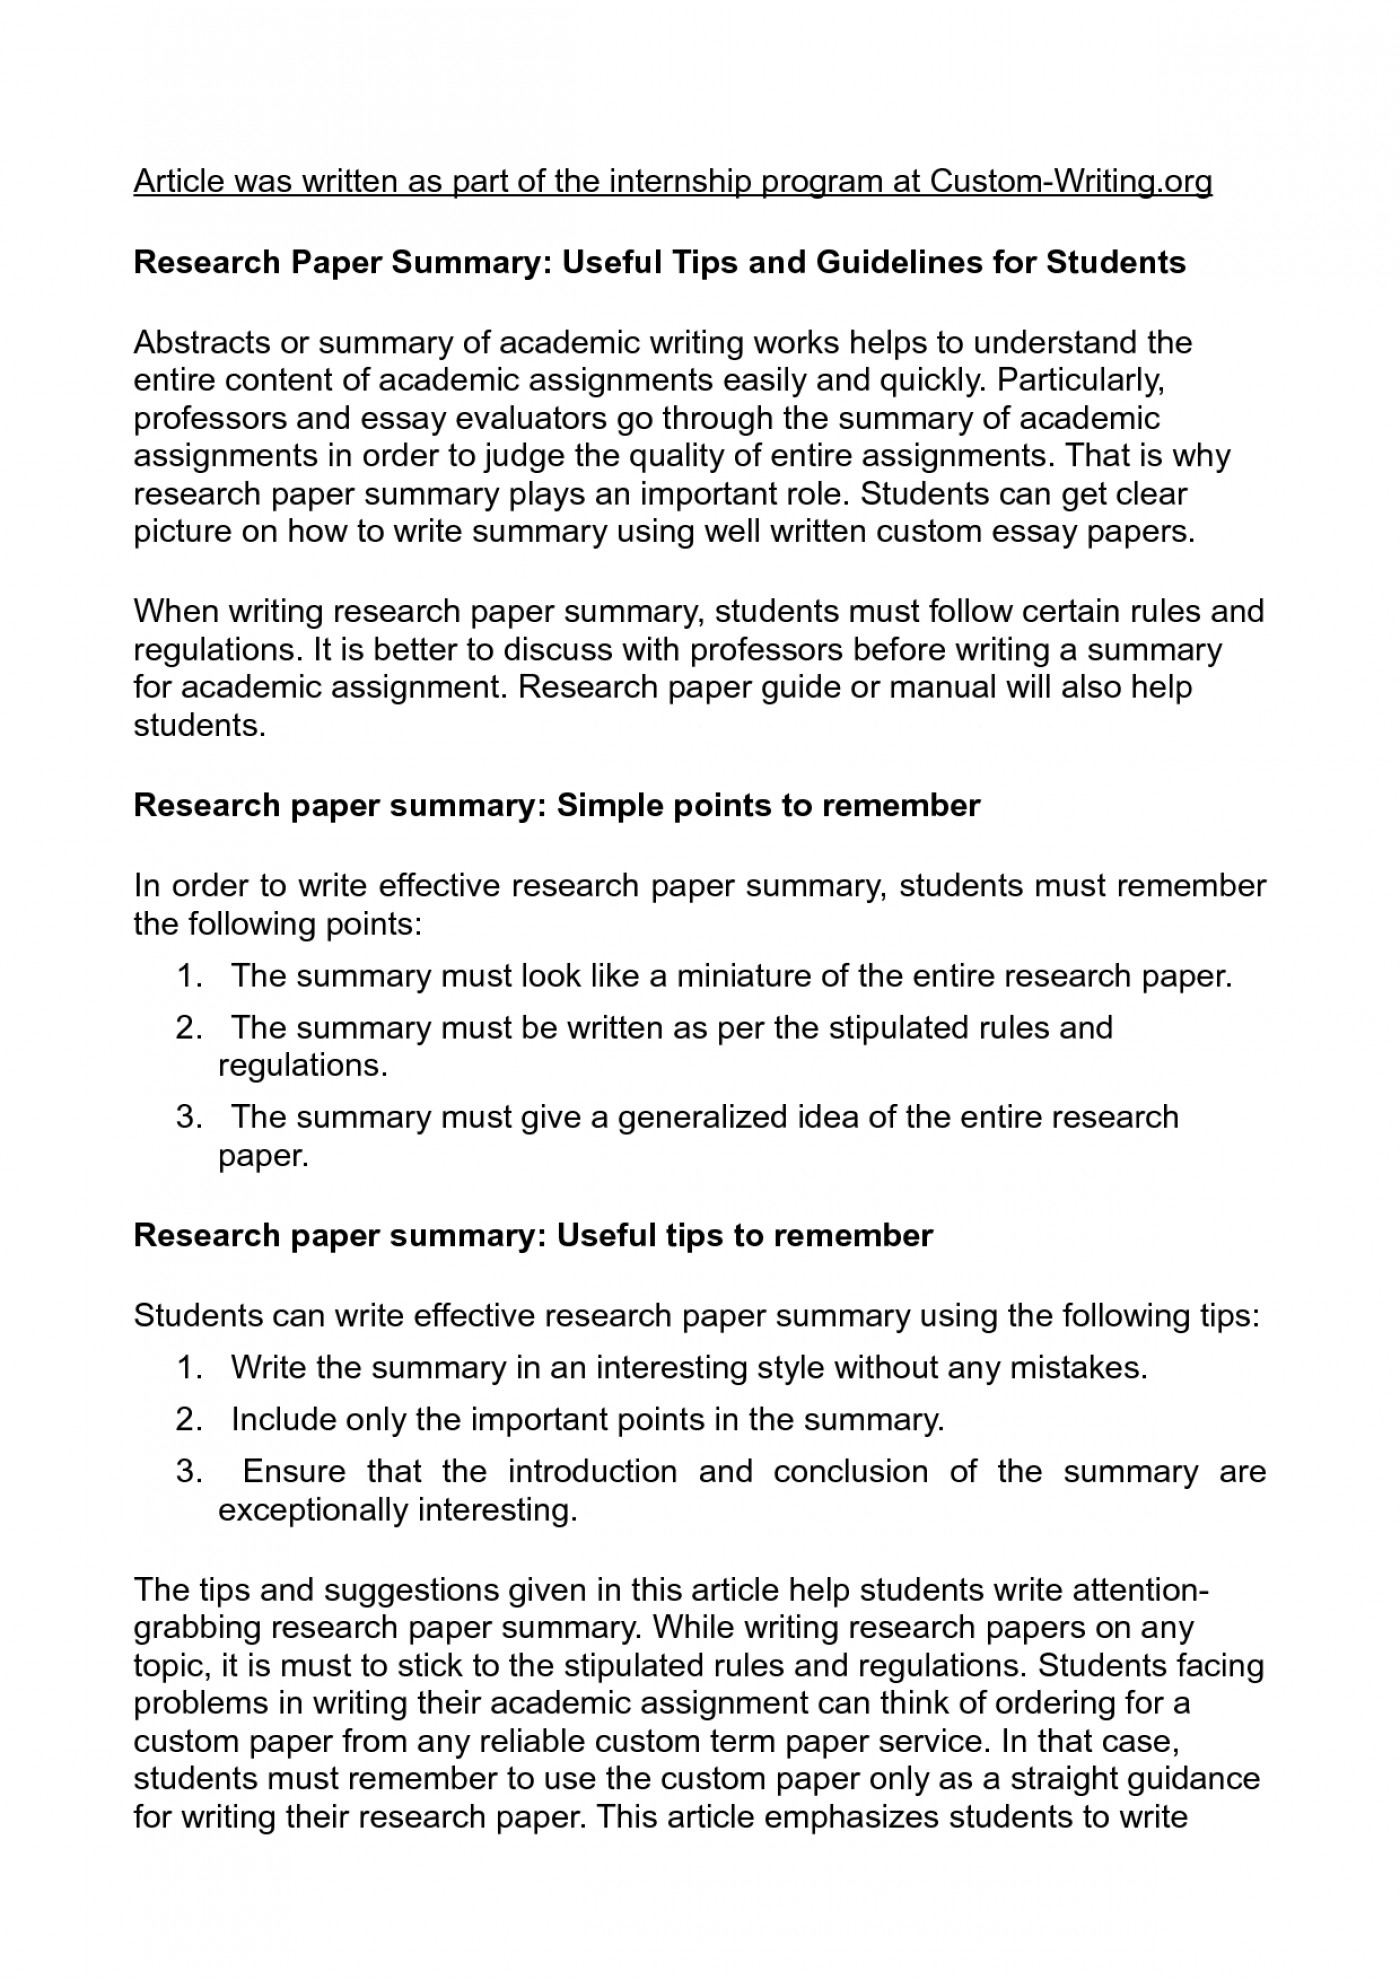 006 Essay Example Adhd Research Papers Brain Scan College About Writing Paper Summary 5 Impressive Introduction Thesis Statement 1400